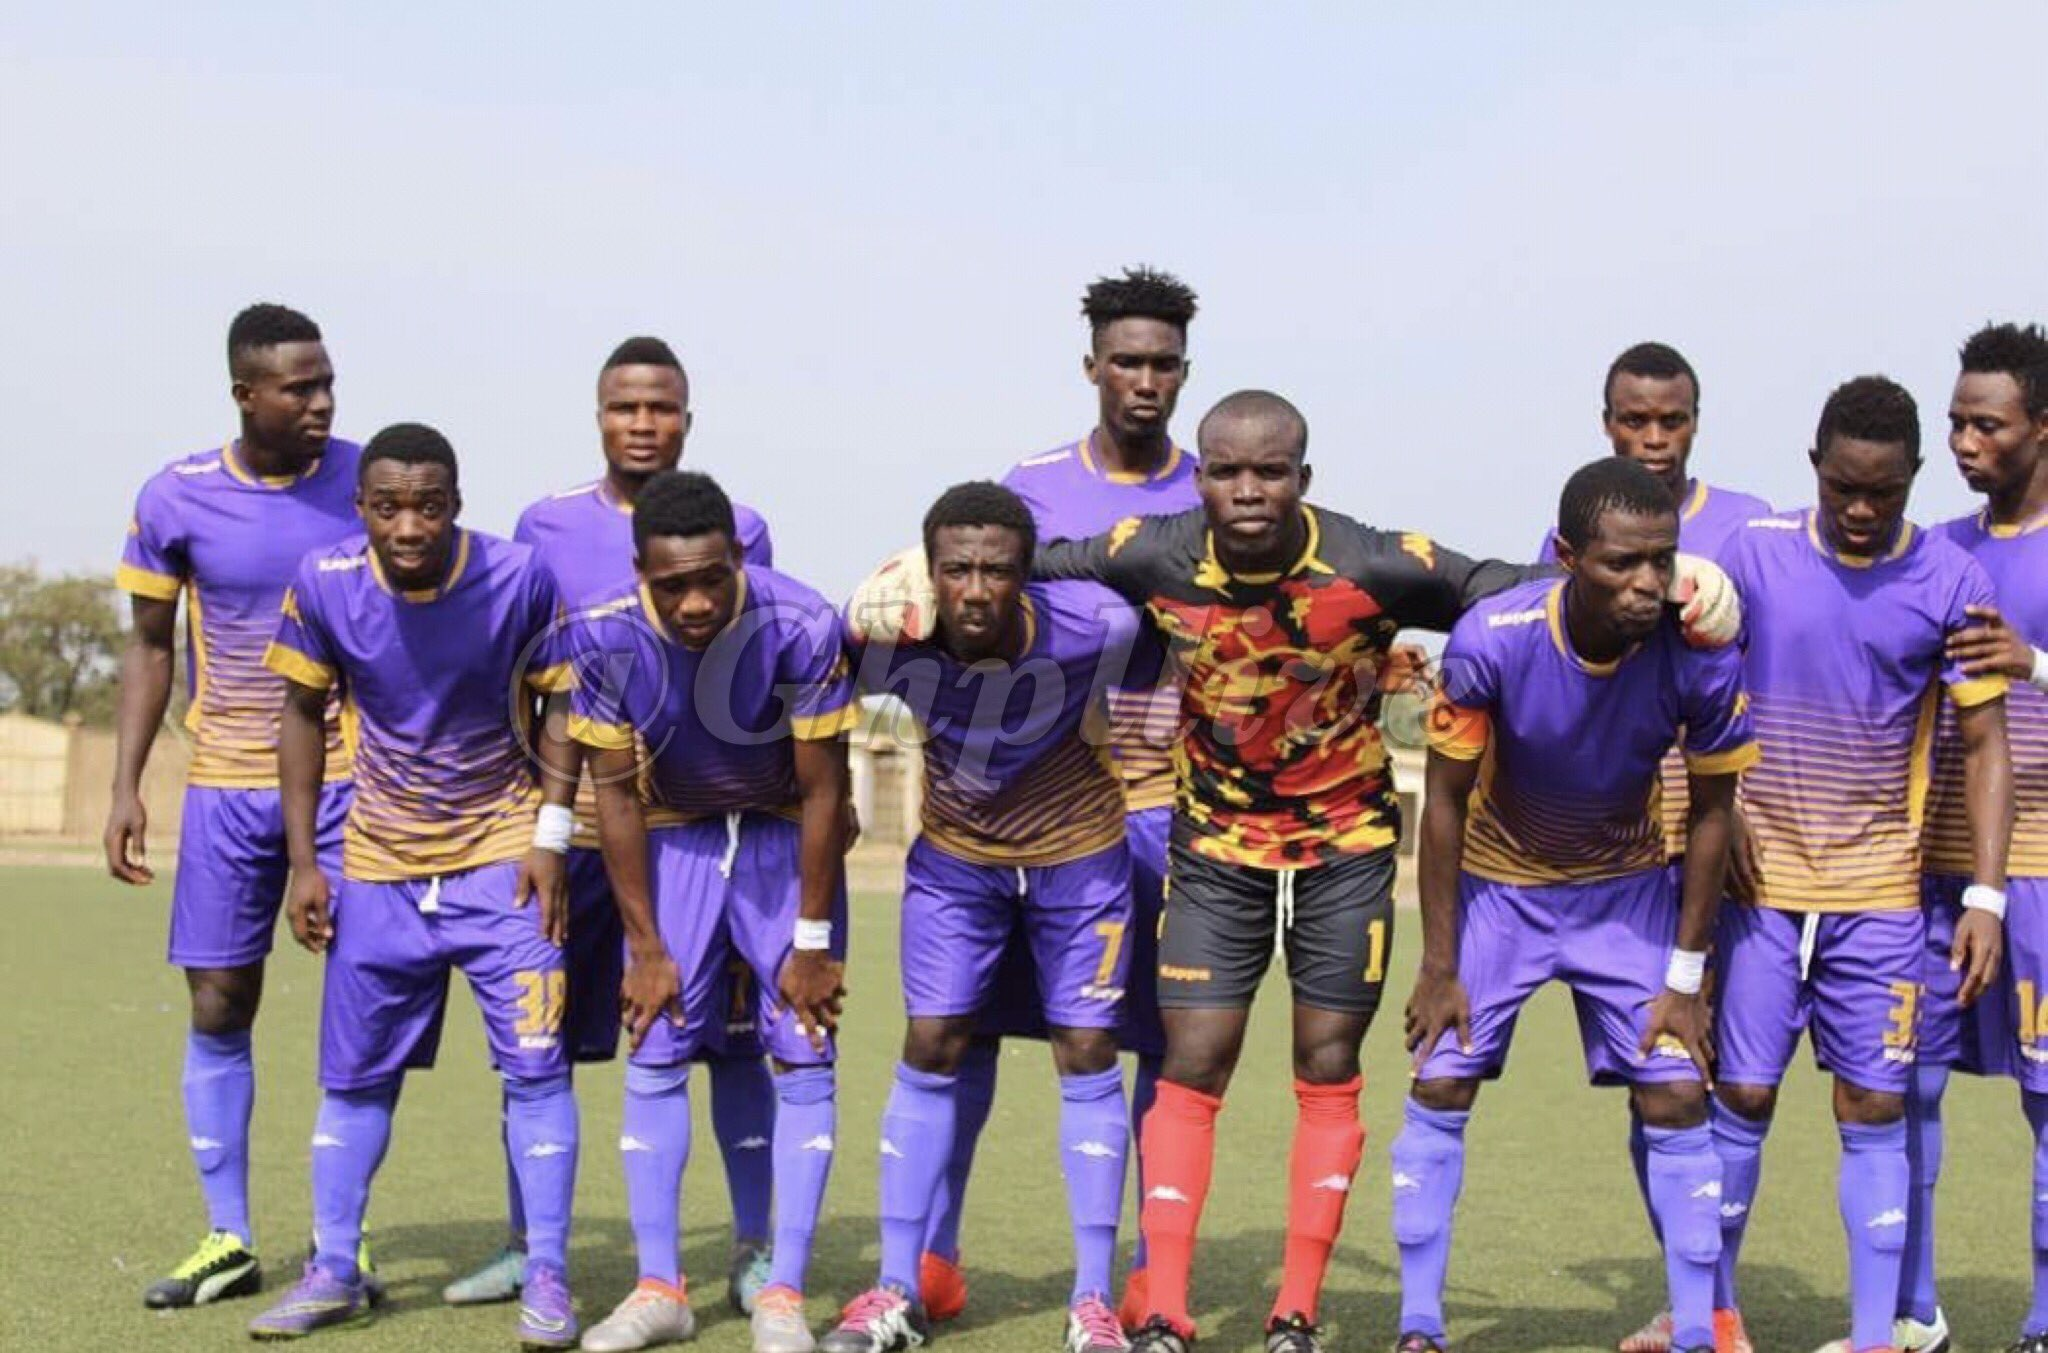 Ghana Premier League Preview: Tema Youth vs Great Olympics- Stern test expected in relegation battle